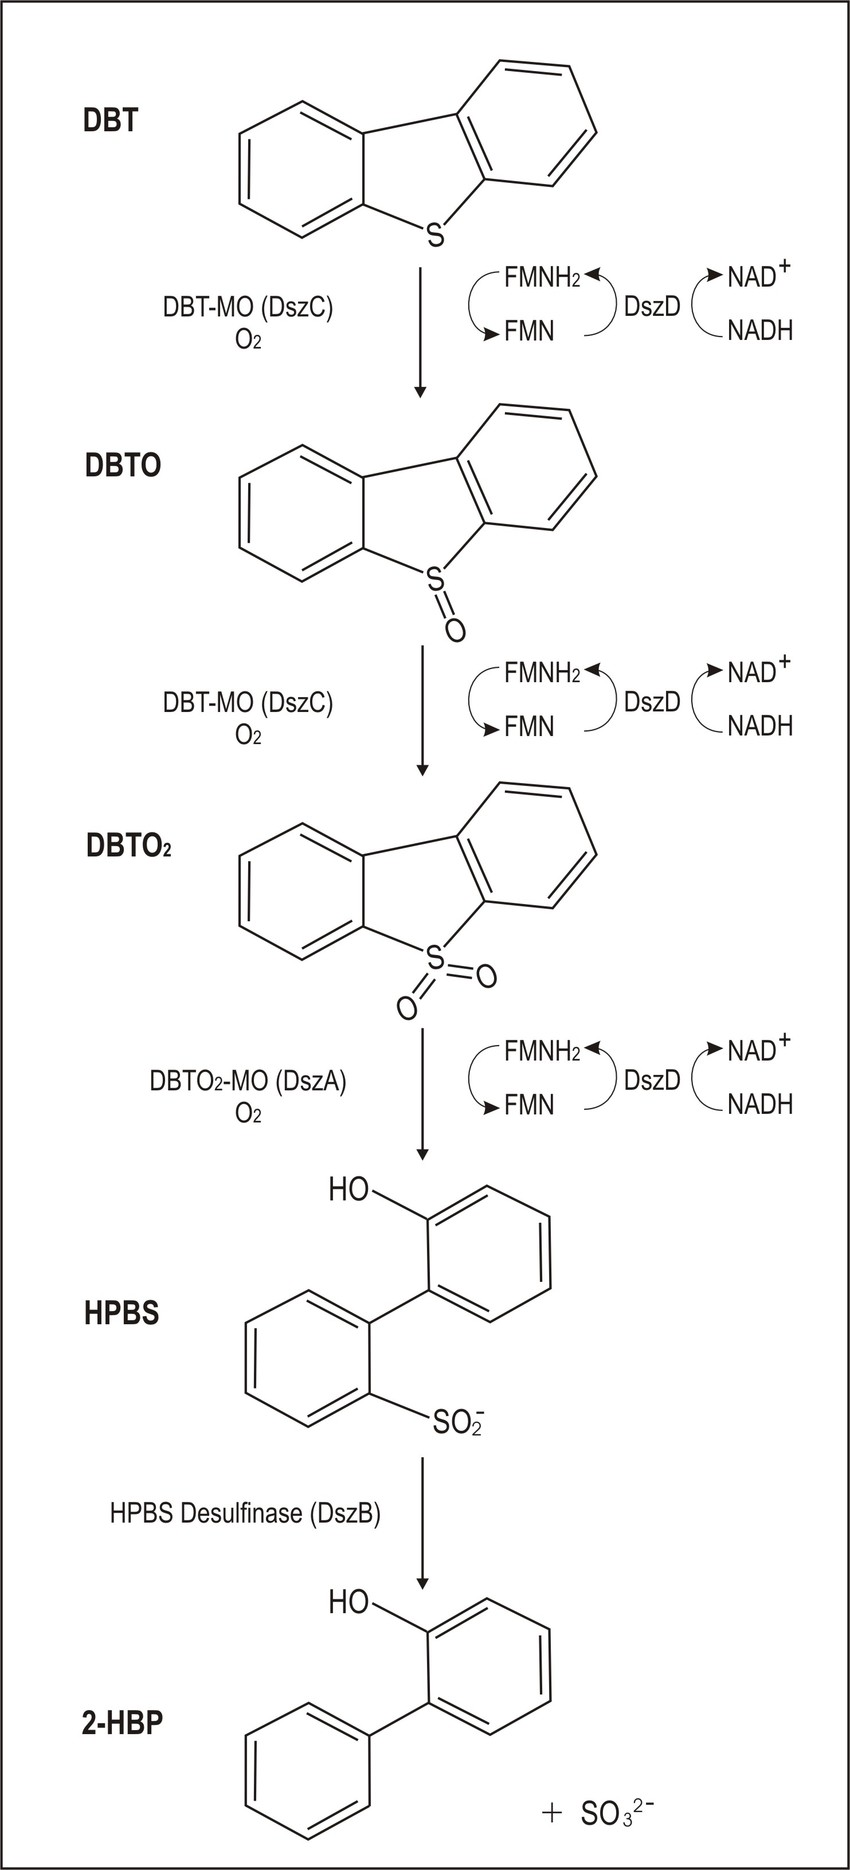 medium resolution of the 4s pathway for the biodesulfurization of dbt download scientific diagram